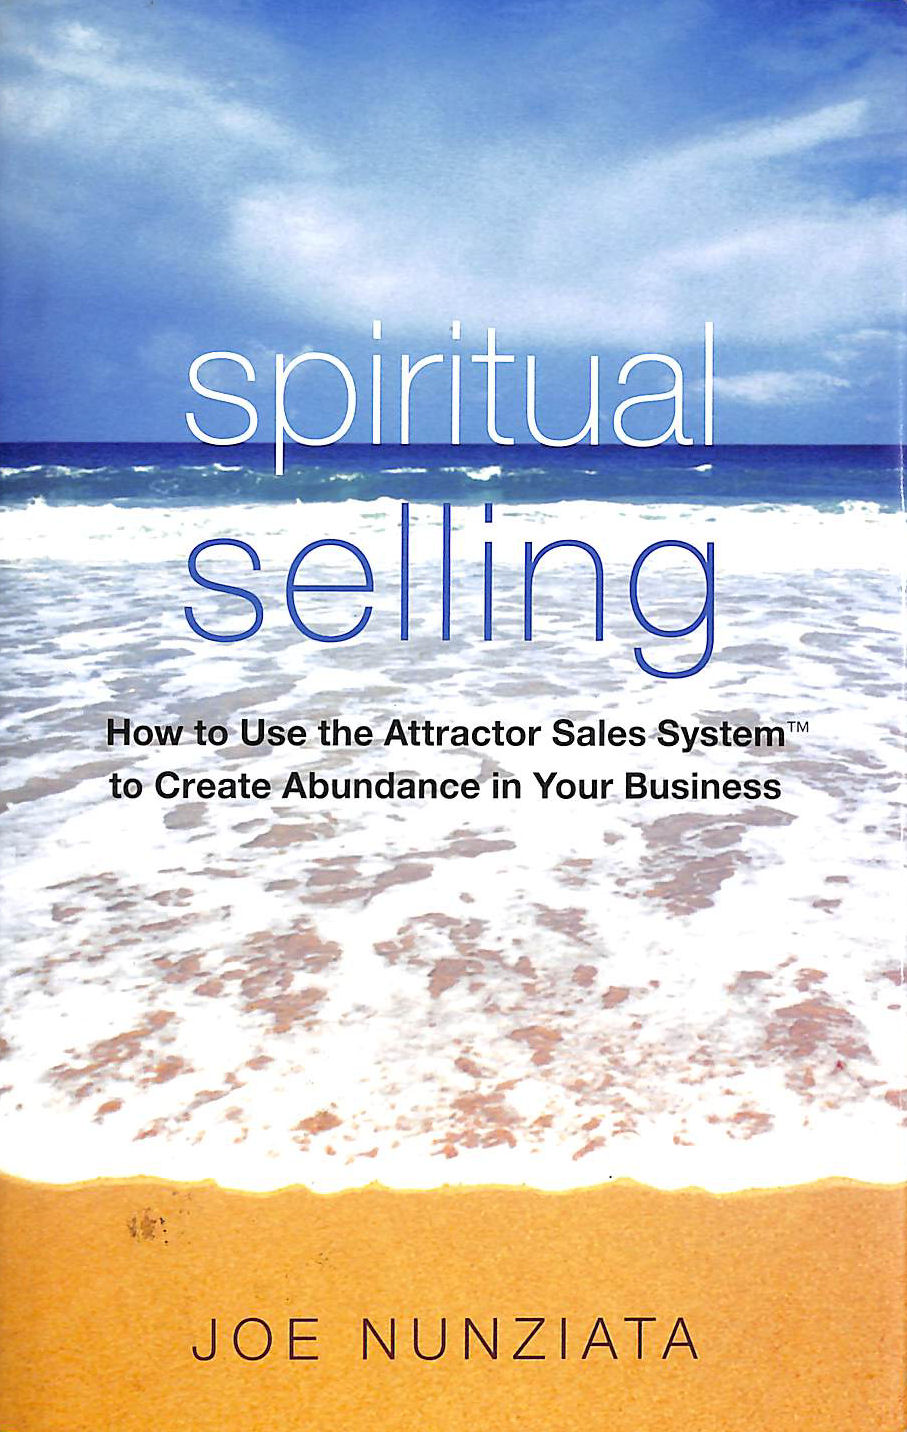 Image for Spiritual Selling: How To Use The Attractor Sales System To Create Abundance In Your Business